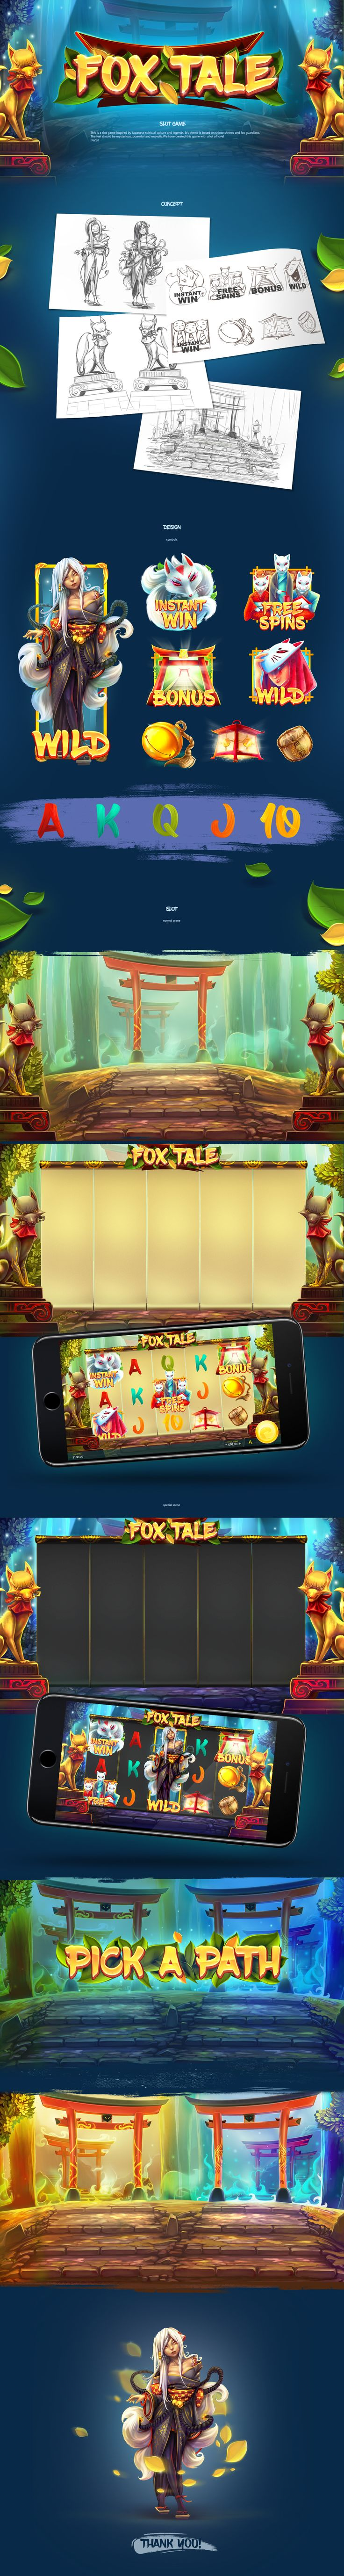 Fox Tale - Slot Game on Behance